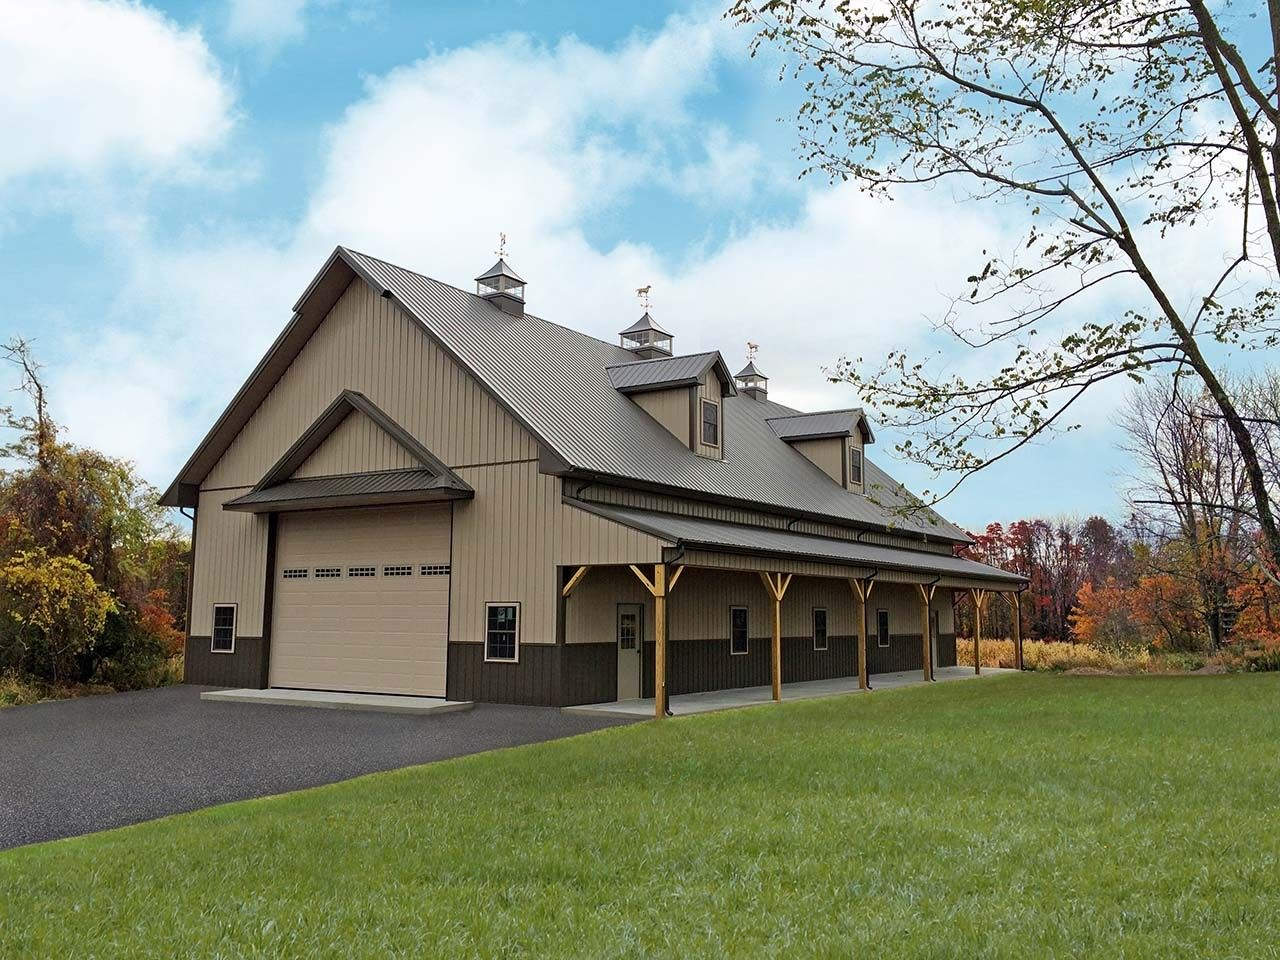 Residential pole building tri state buildings pa nj Metal pole barn homes plans